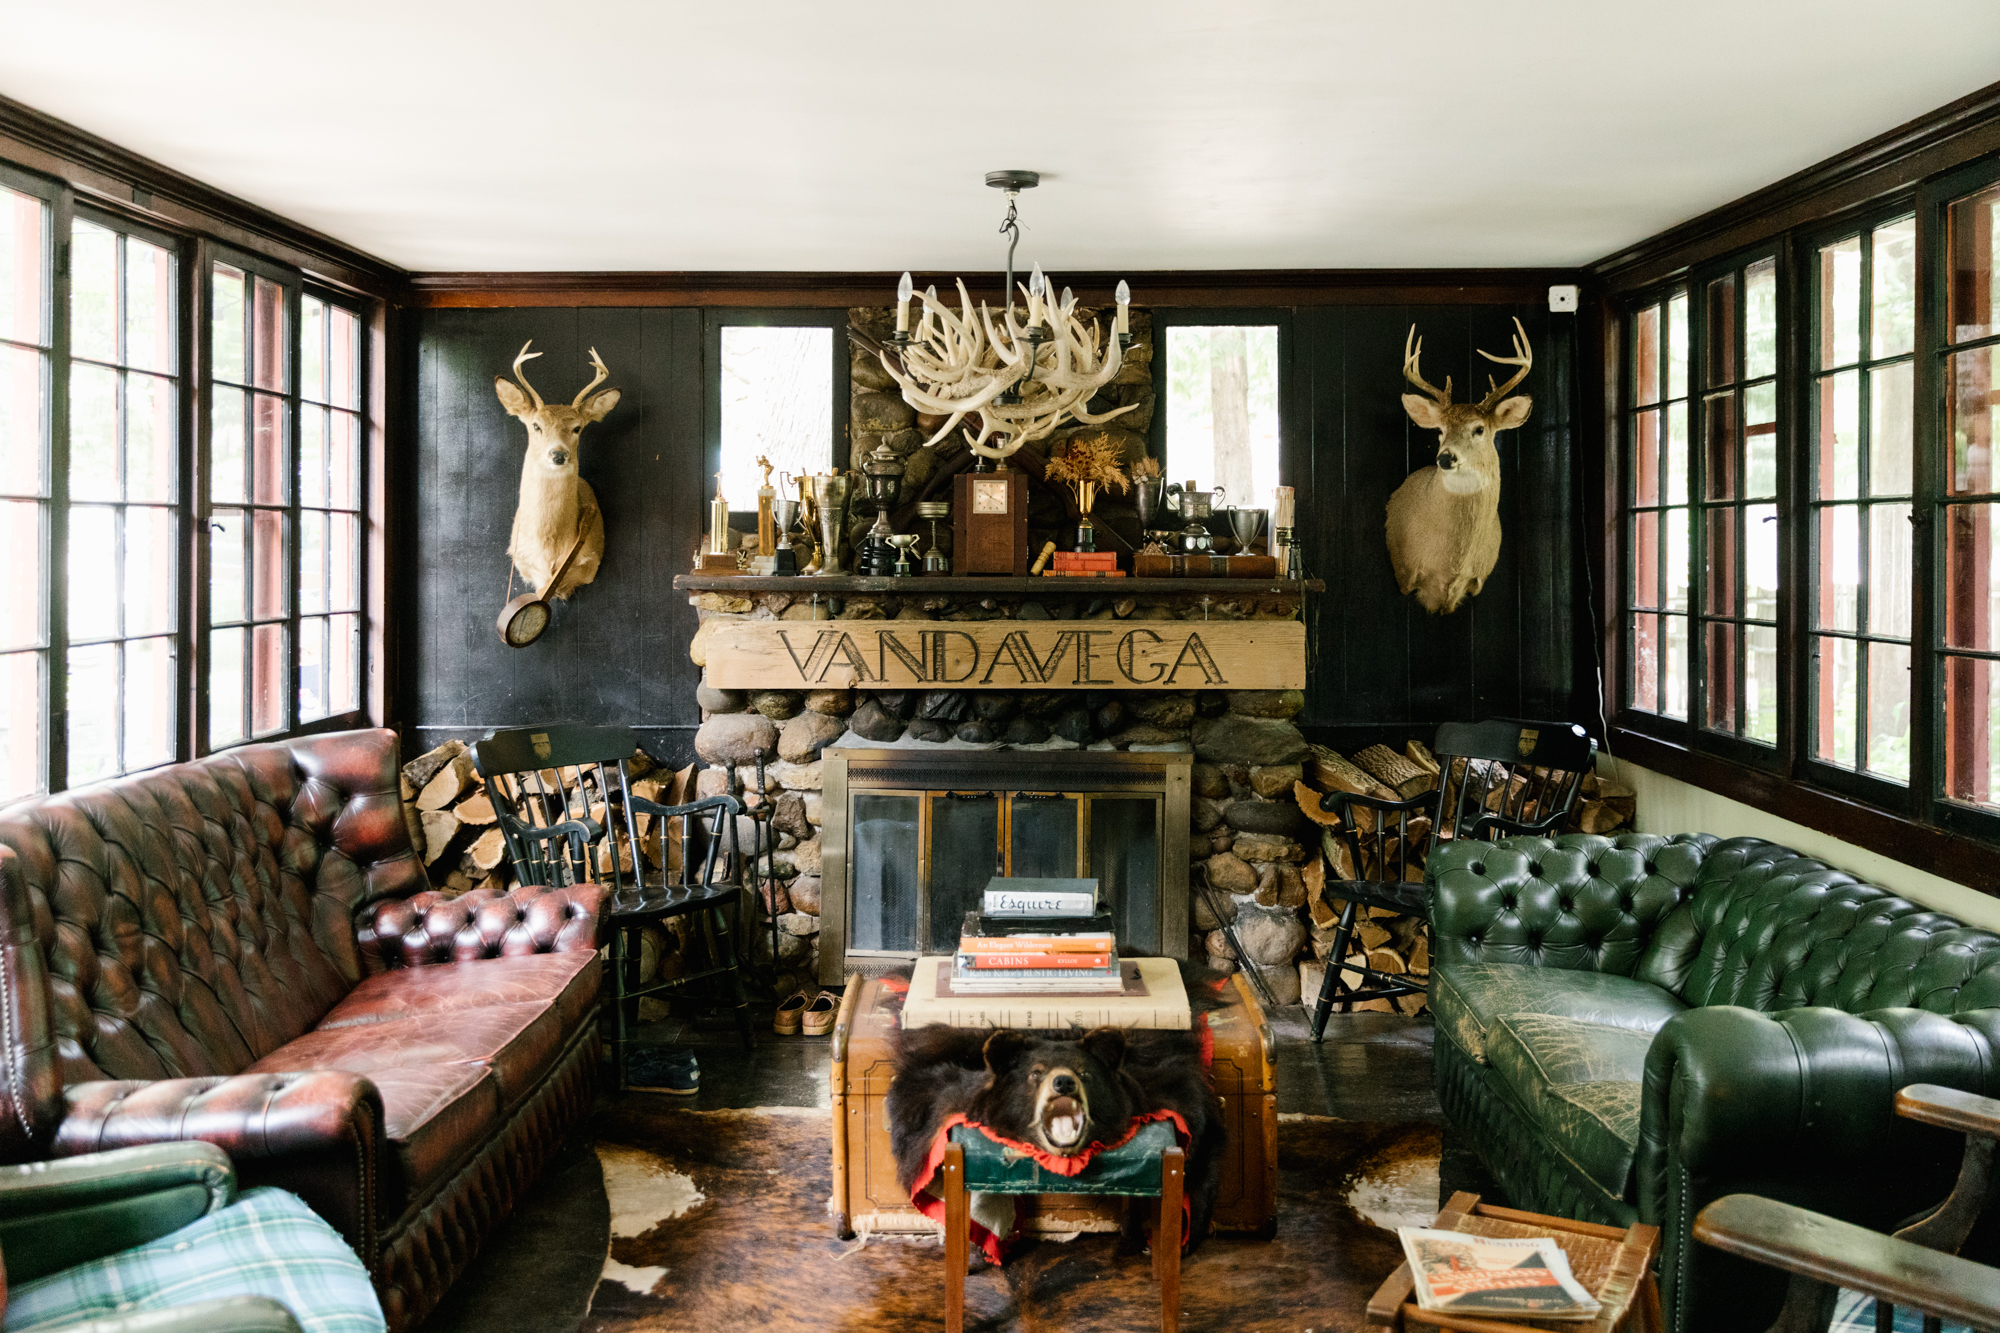 A photo of the main lodge at  Camp Wandawega  in Elkhorn, Wisconsin during Let's Camp 2018 photographed for  Driftless magazine  and hosted by  The Glossary  and  Feminest .